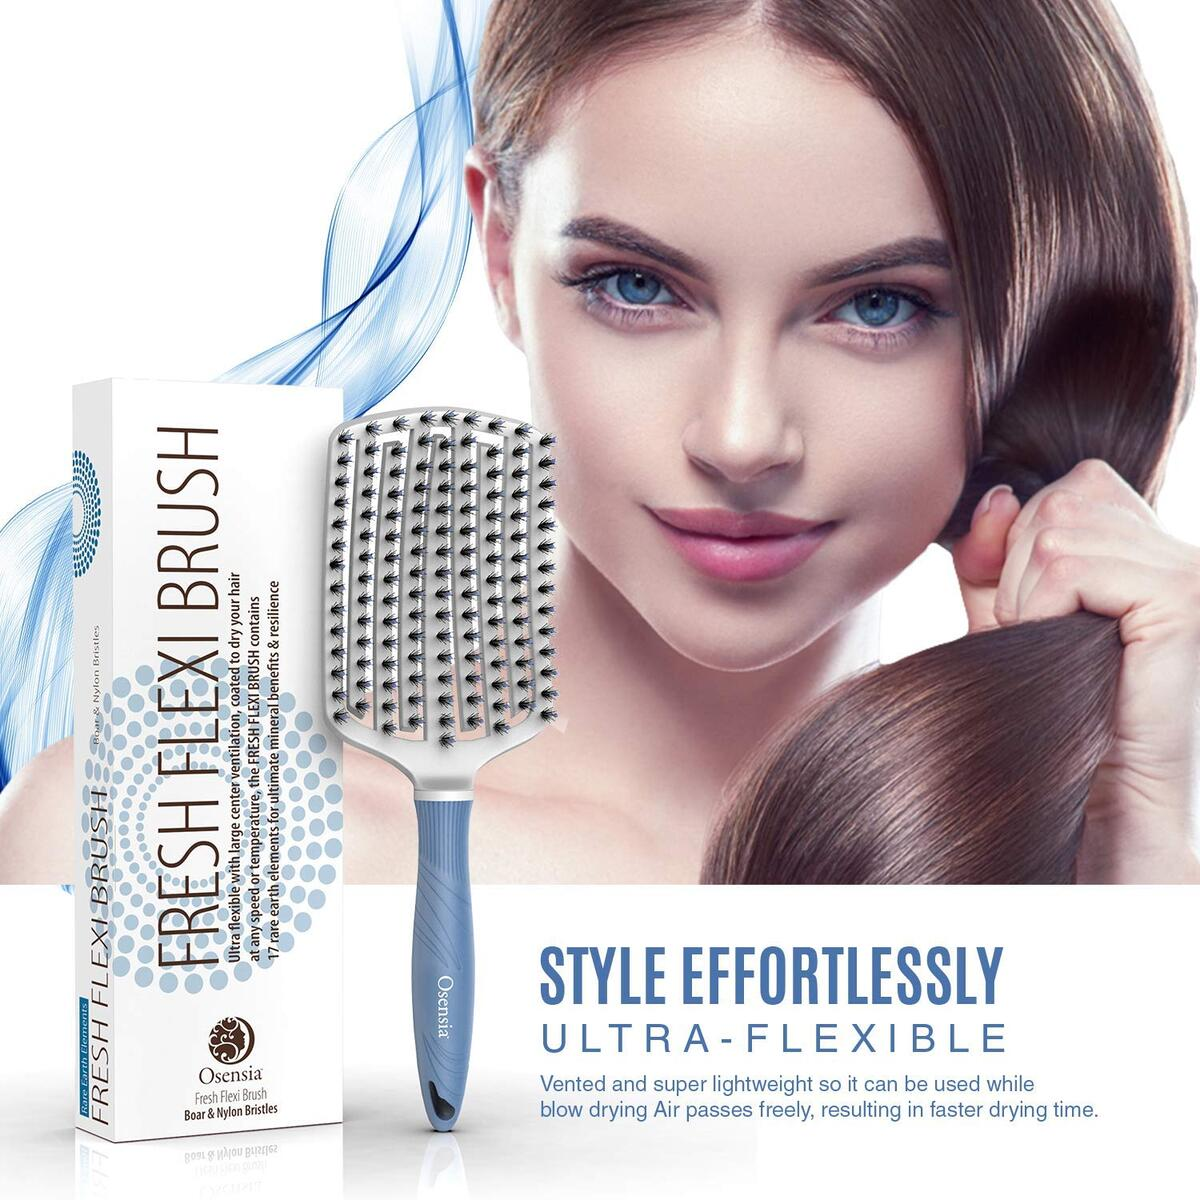 Best Selling Curly Hair Brush for Thick Hair Boar Bristle Flexi Brush